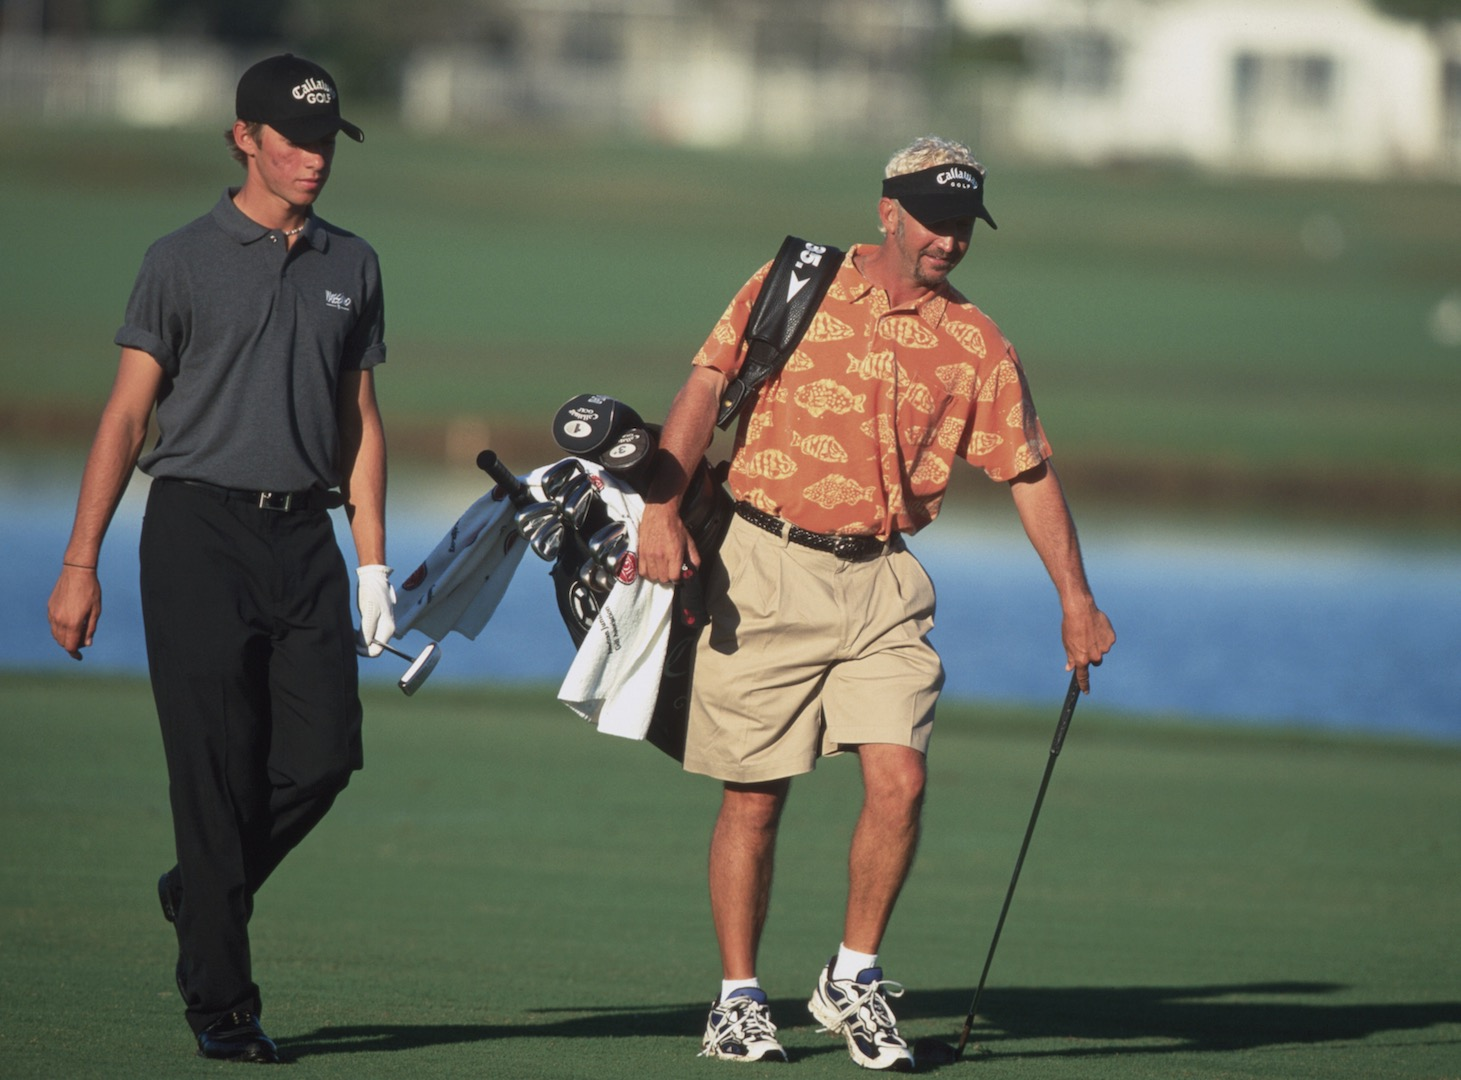 Pushy Golf Parents: The Top 10!